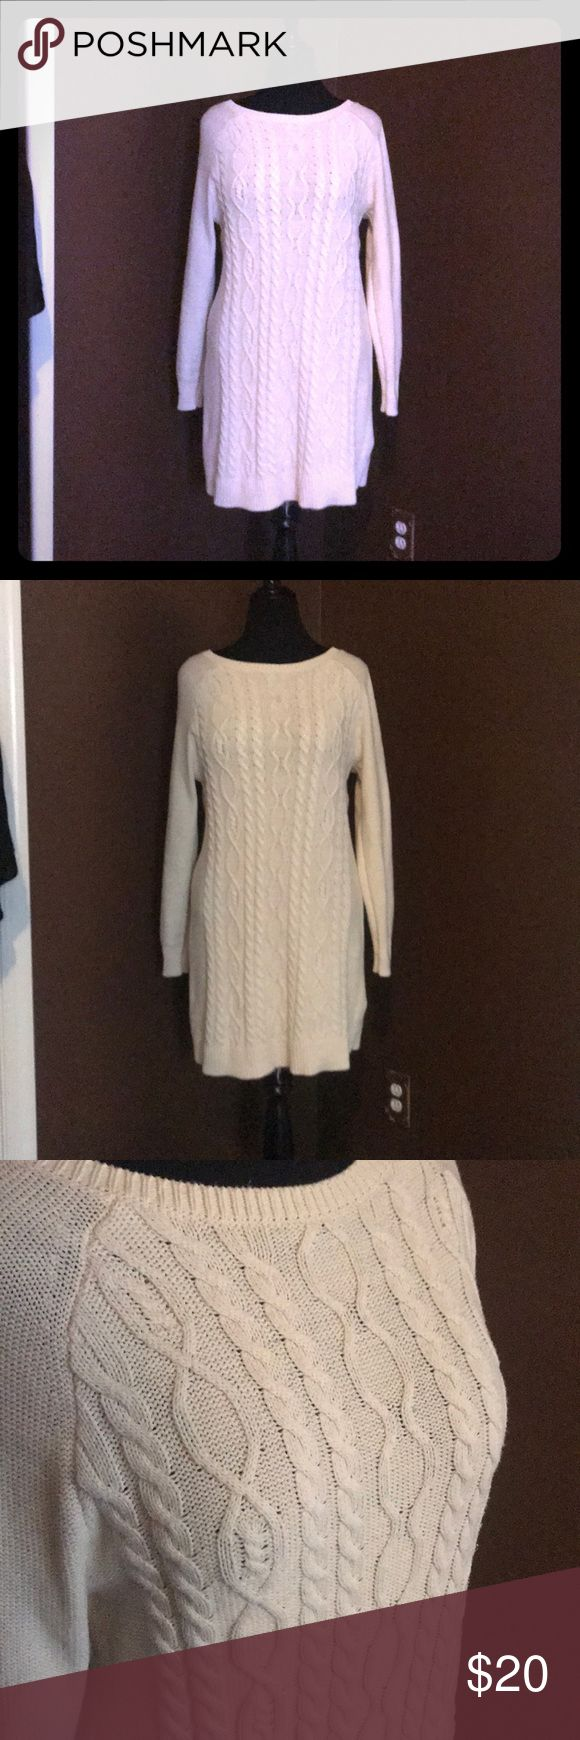 XL cream sweater dress Worn 2xs. Thick cream sweater dress. Super cute. Made by old Navy. Old Navy Dresses Mini